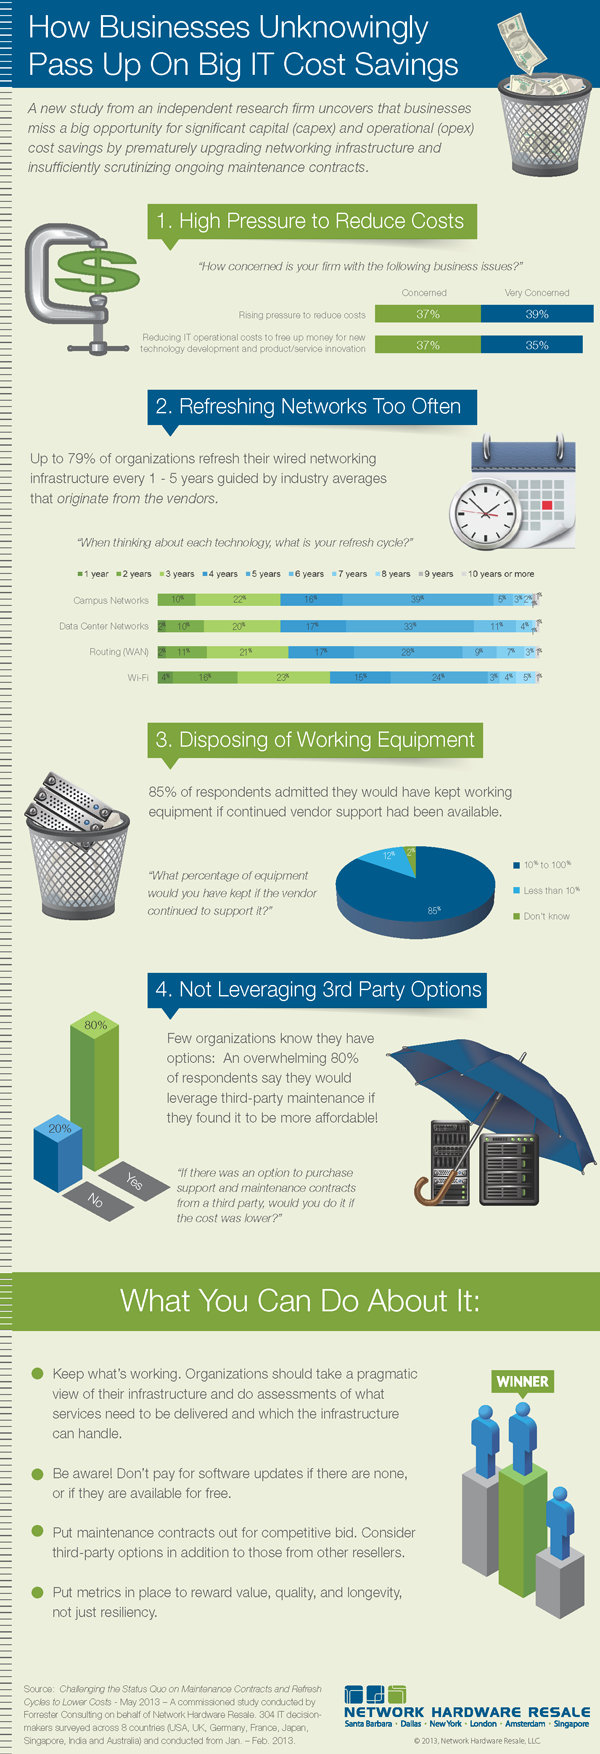 nhr_forrester_thought_leadership_paper_infographic2